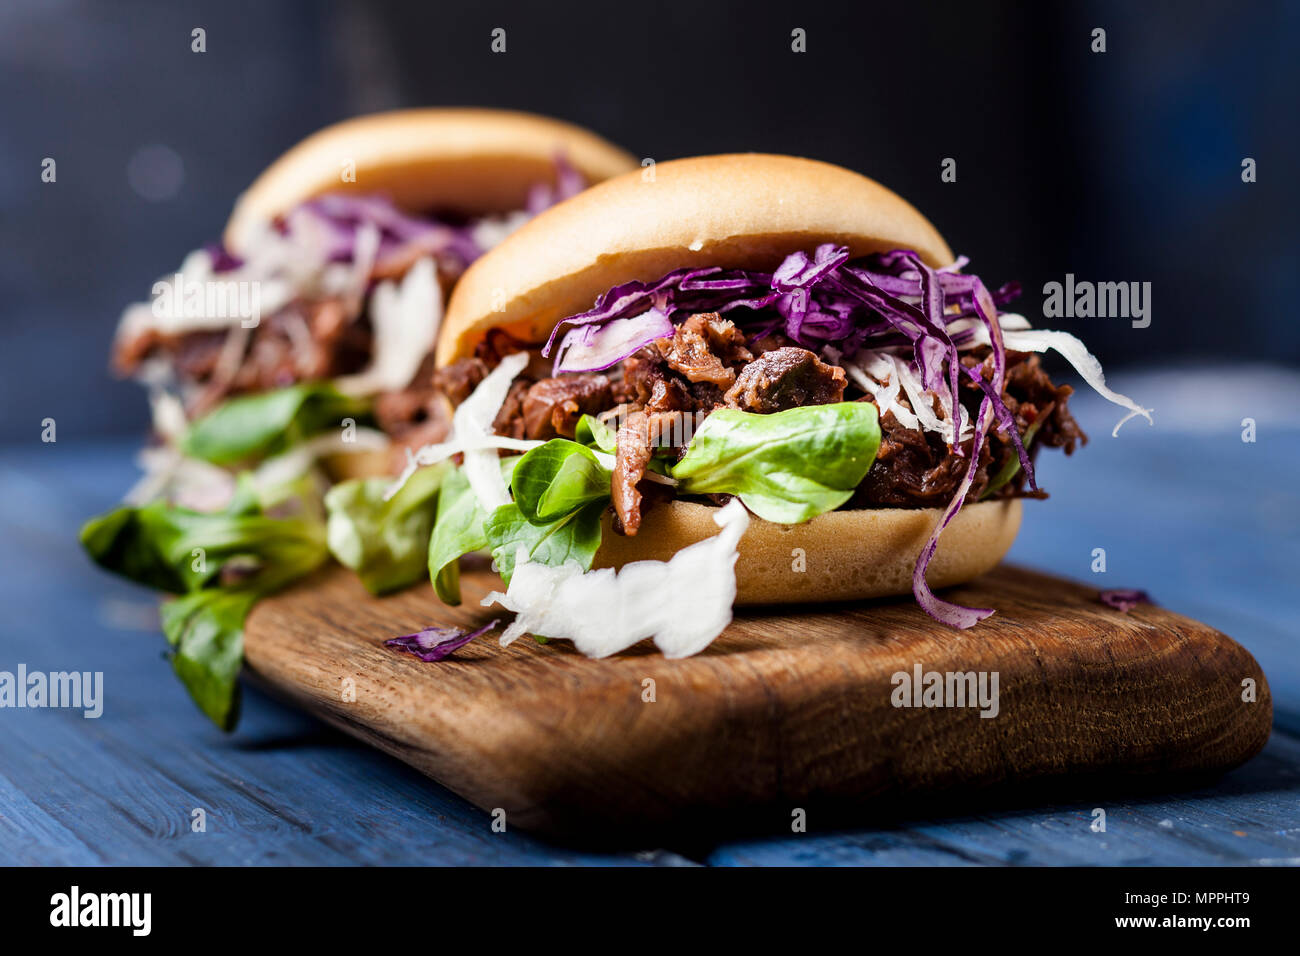 Vegan jackfruit jurger with red cabbage, white cabbage, lamb's lettuce - Stock Image